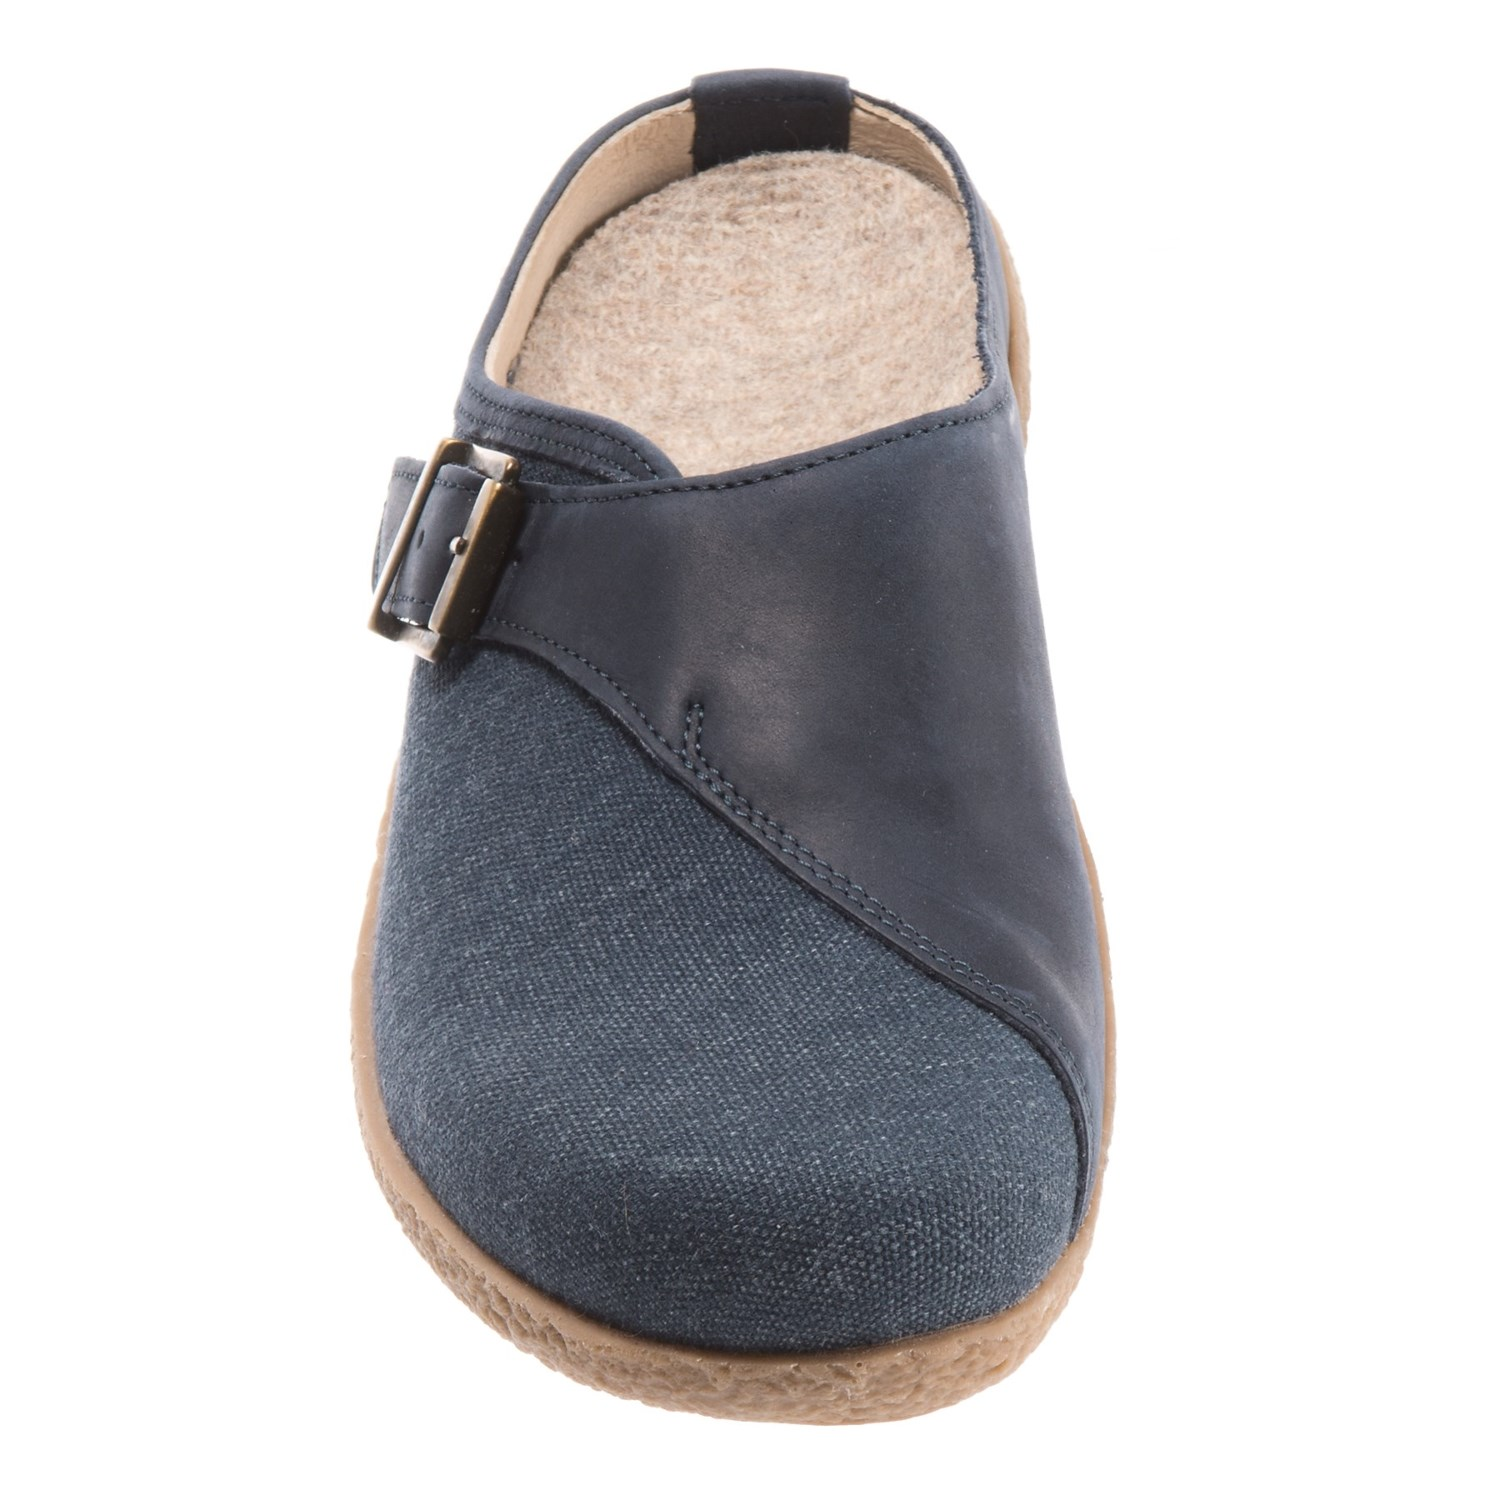 04e883673ddd Giesswein Made in Portugal Radler Clog Slippers (For Women) - Save 83%